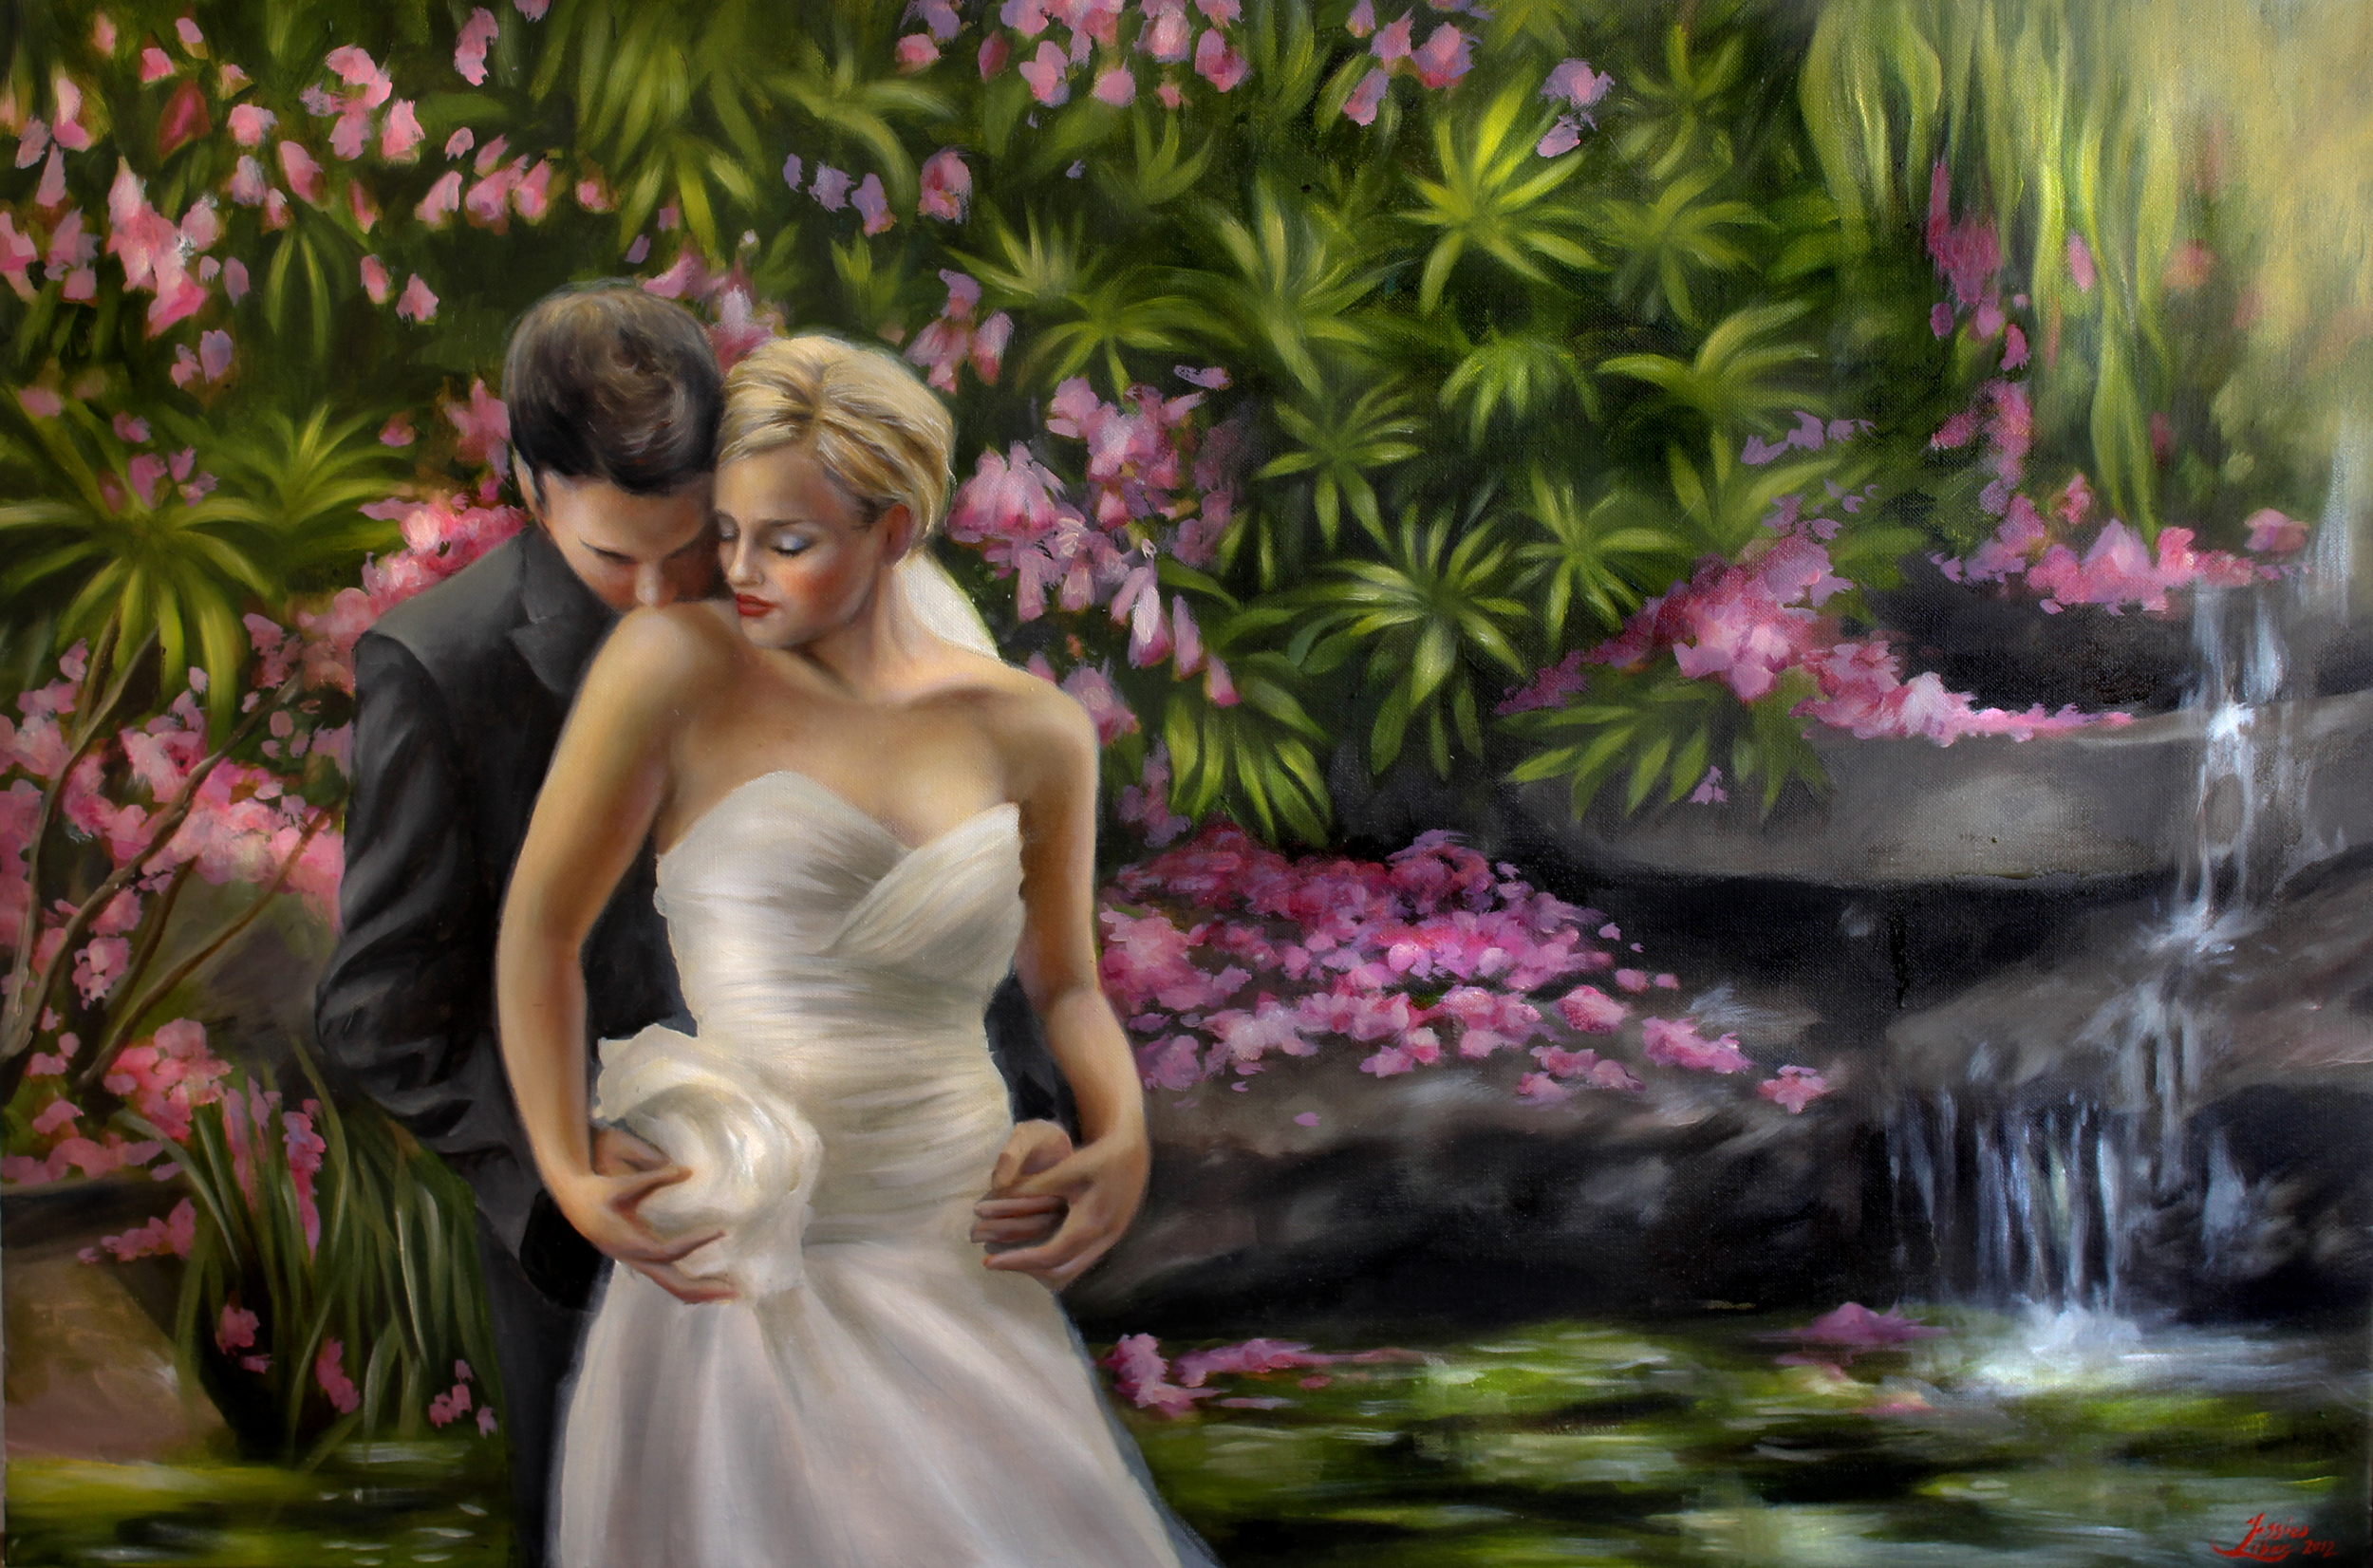 """Jill and Wayne, oil on canvas, 24"""" by 36"""", by Jessica Libor 2012"""